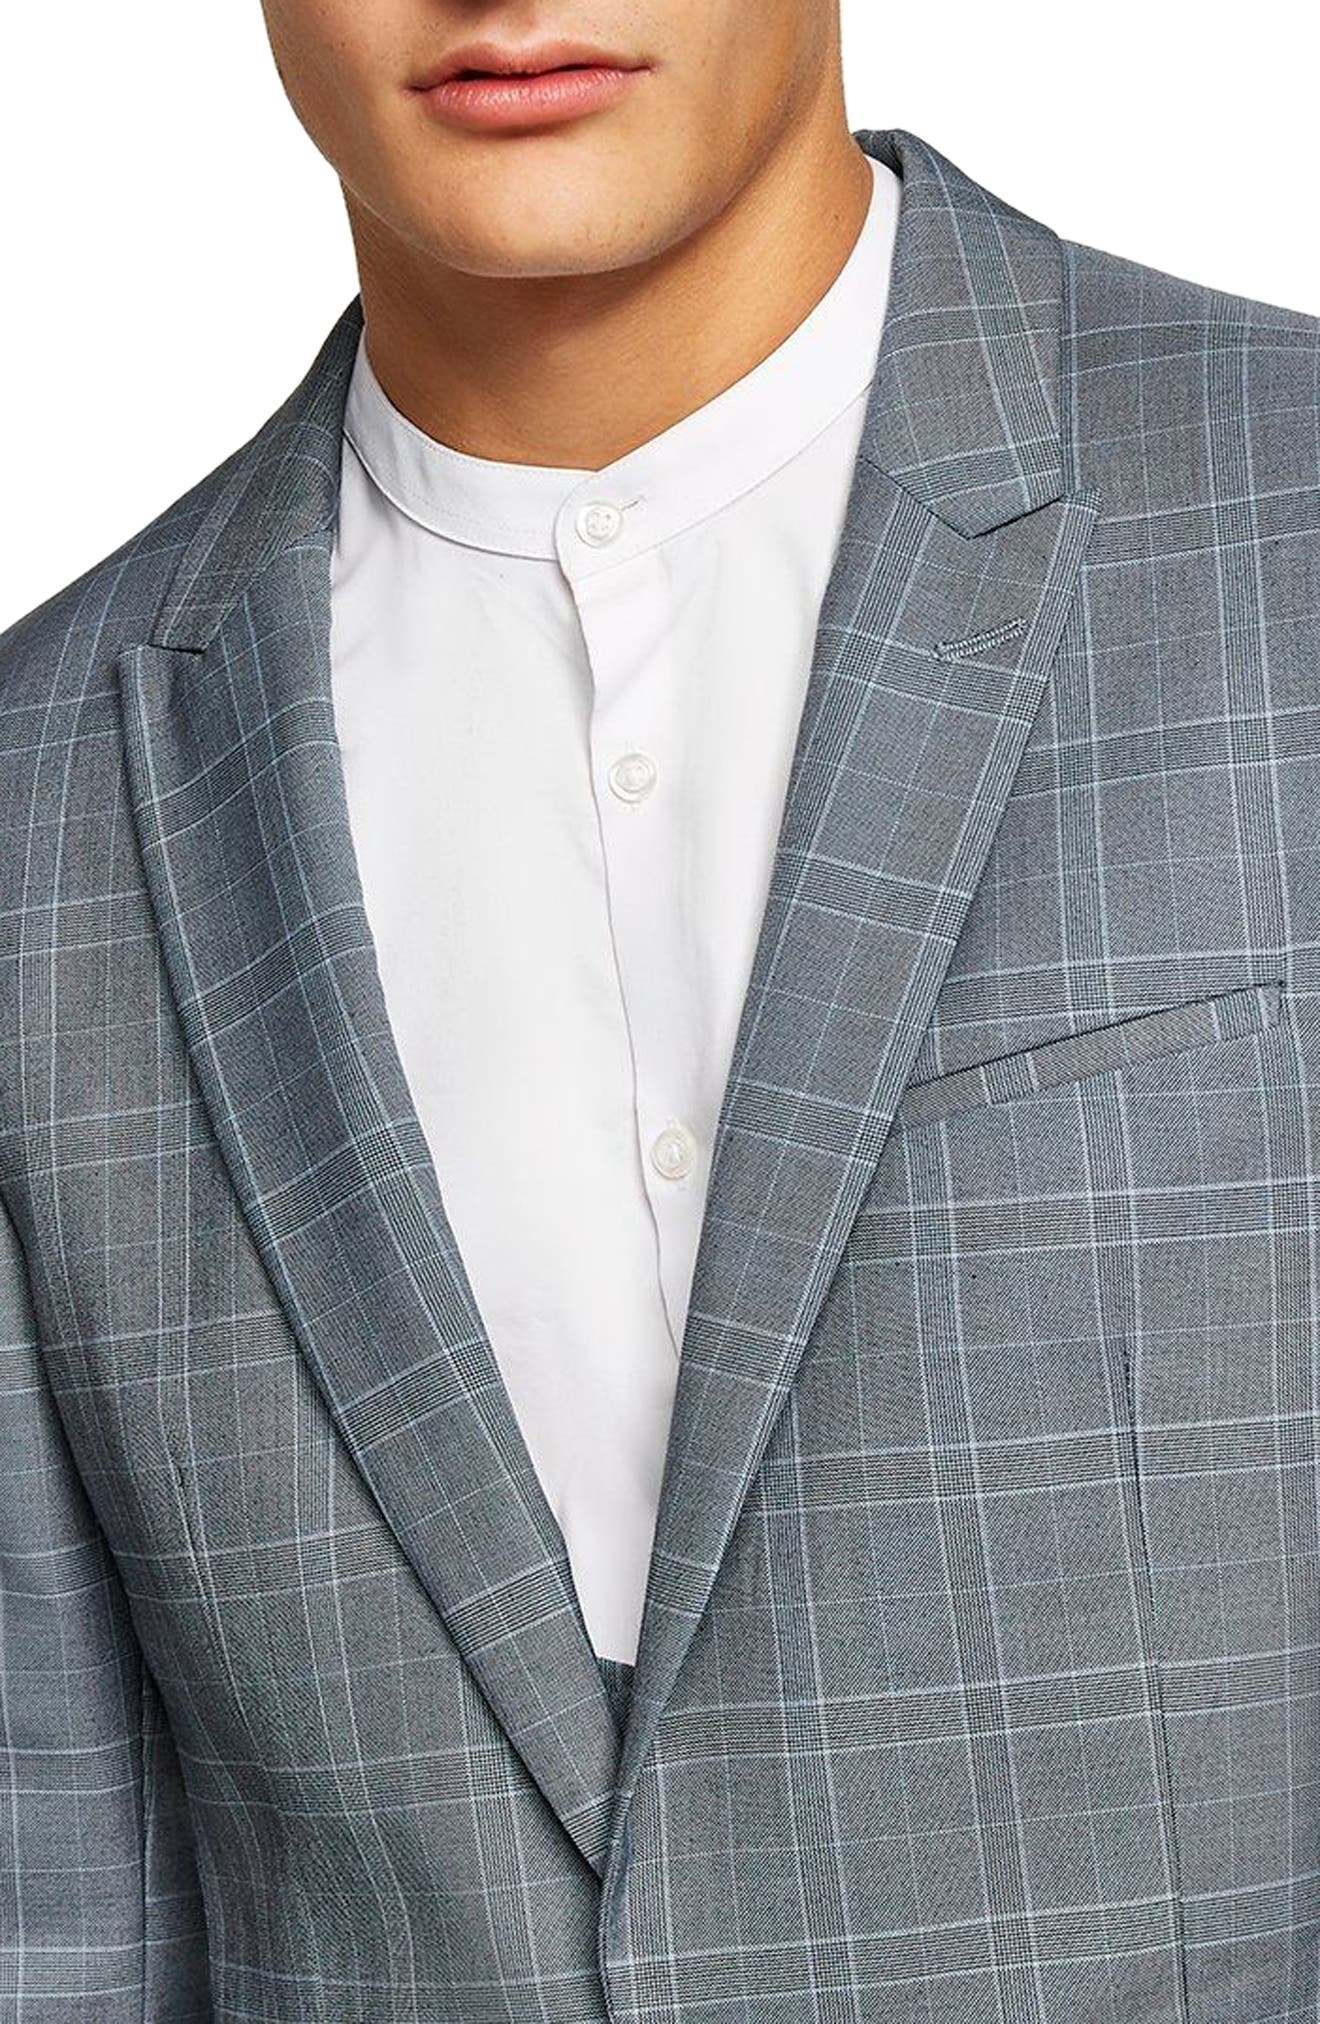 Skinny Fit Check Suit Jacket,                             Alternate thumbnail 3, color,                             400